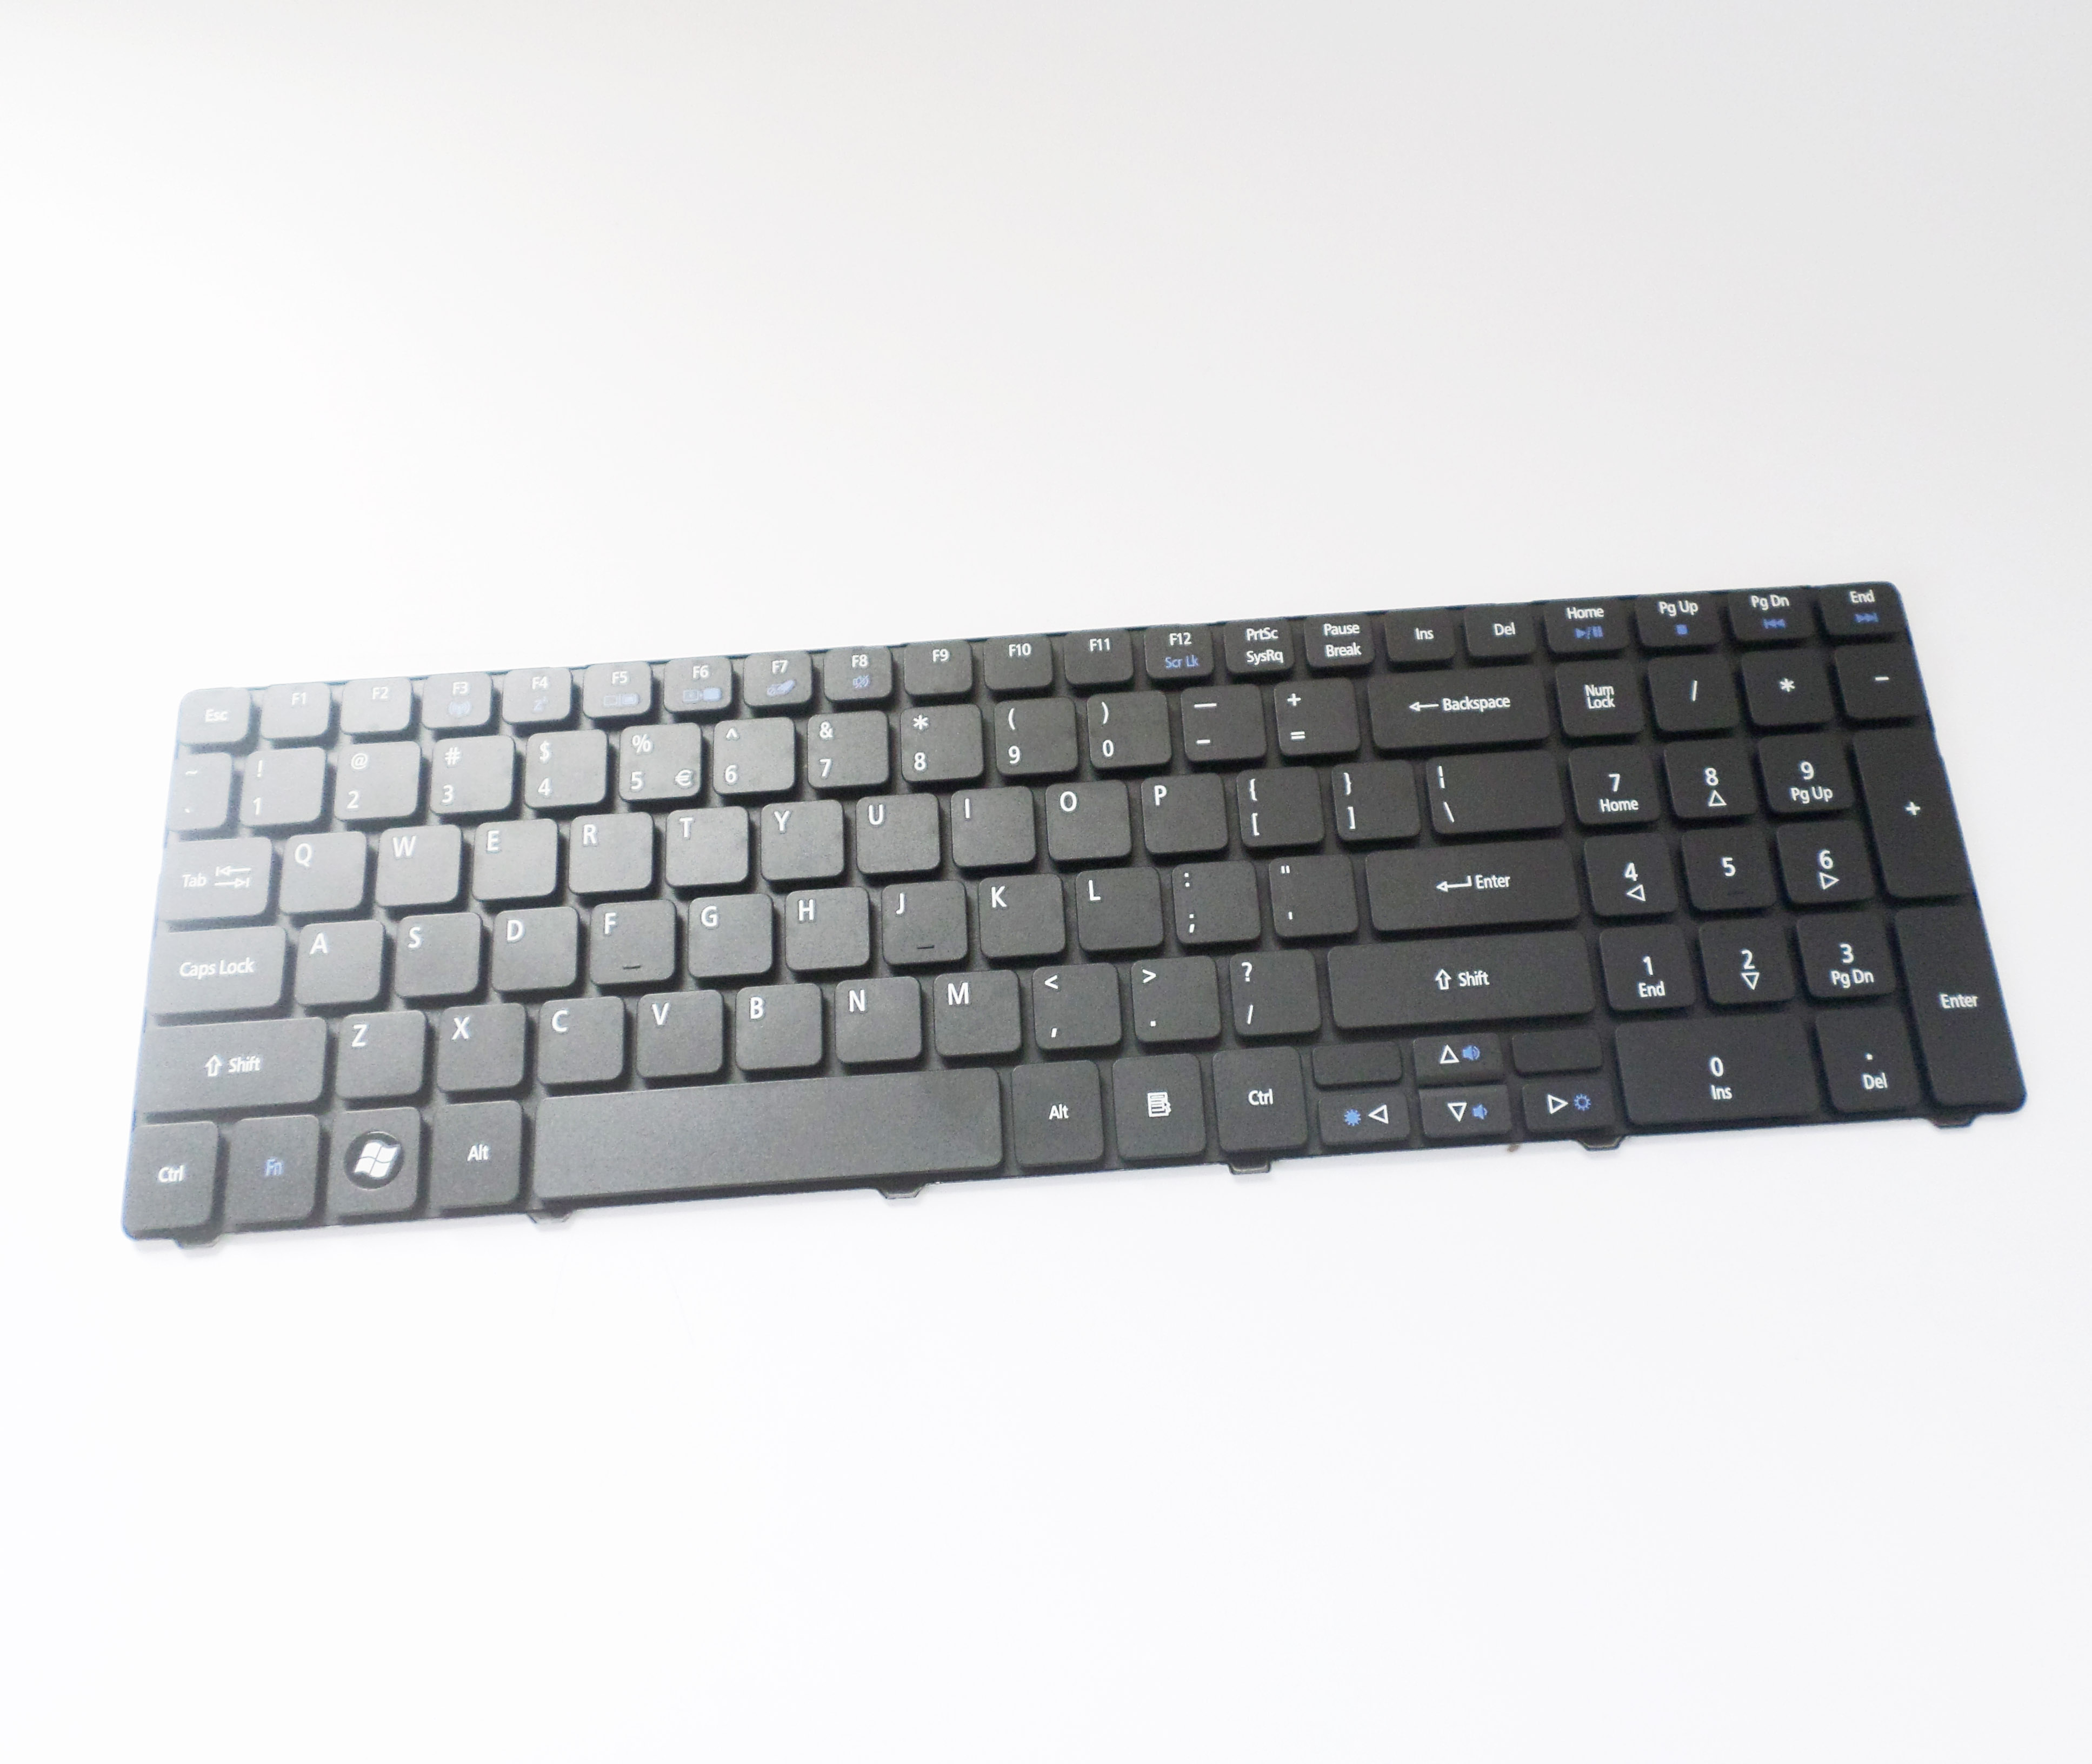 NEW Black Layout US Keyboard For Acer Aspire 5251 5552 5552G 5553 5553G 5733 5733Z 5750 <font><b>5750ZG</b></font> 5741/G 7551 7551G KBI170A228 image